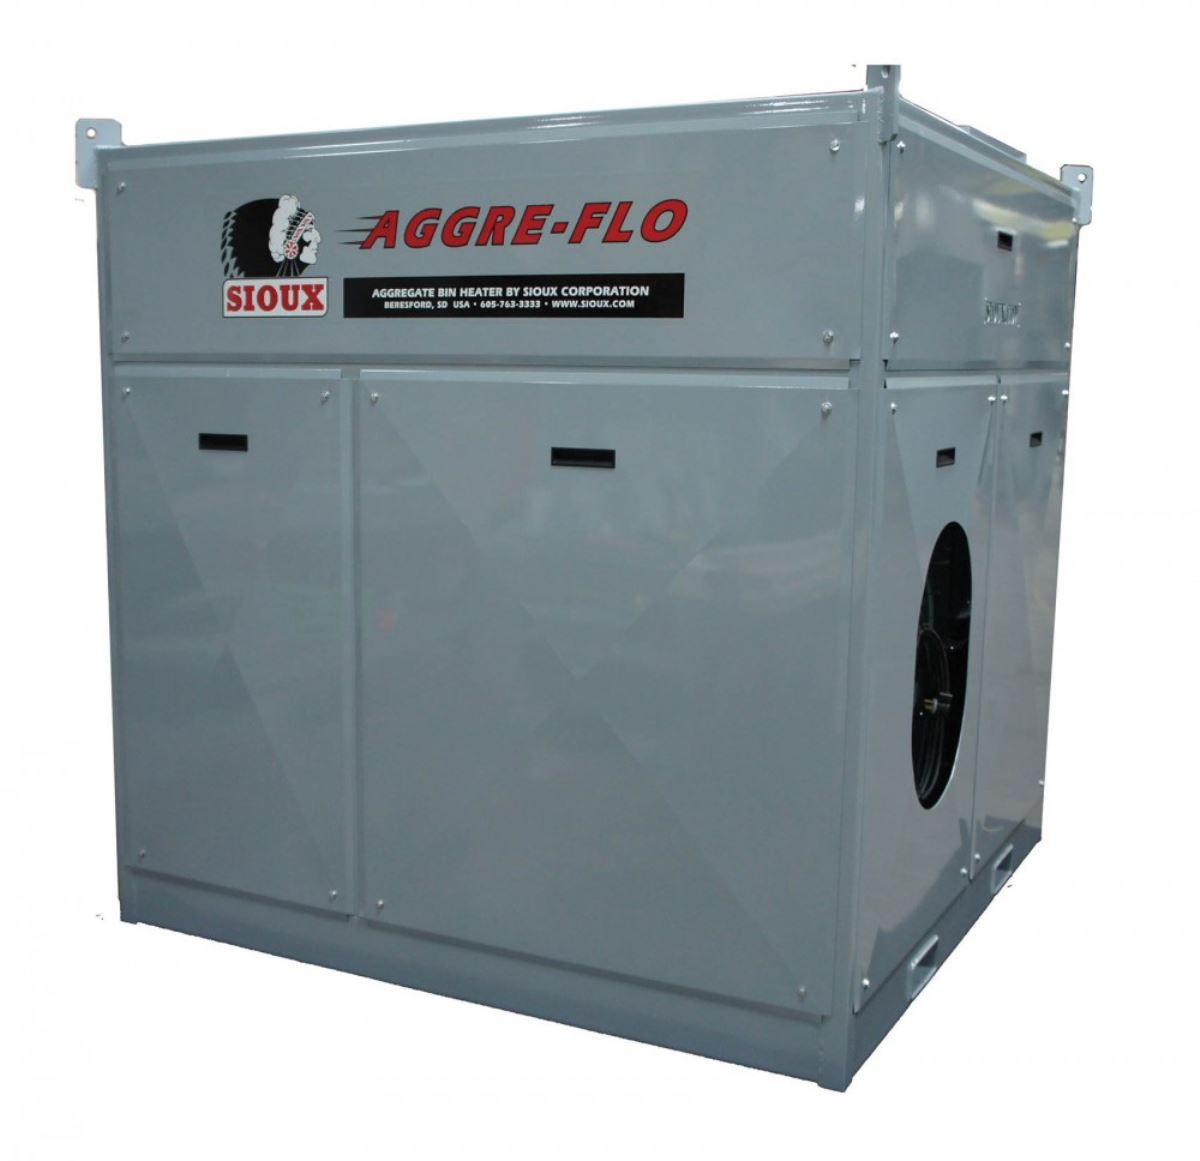 Sioux Aggre-Flo | Aggregate Equipment Specialists